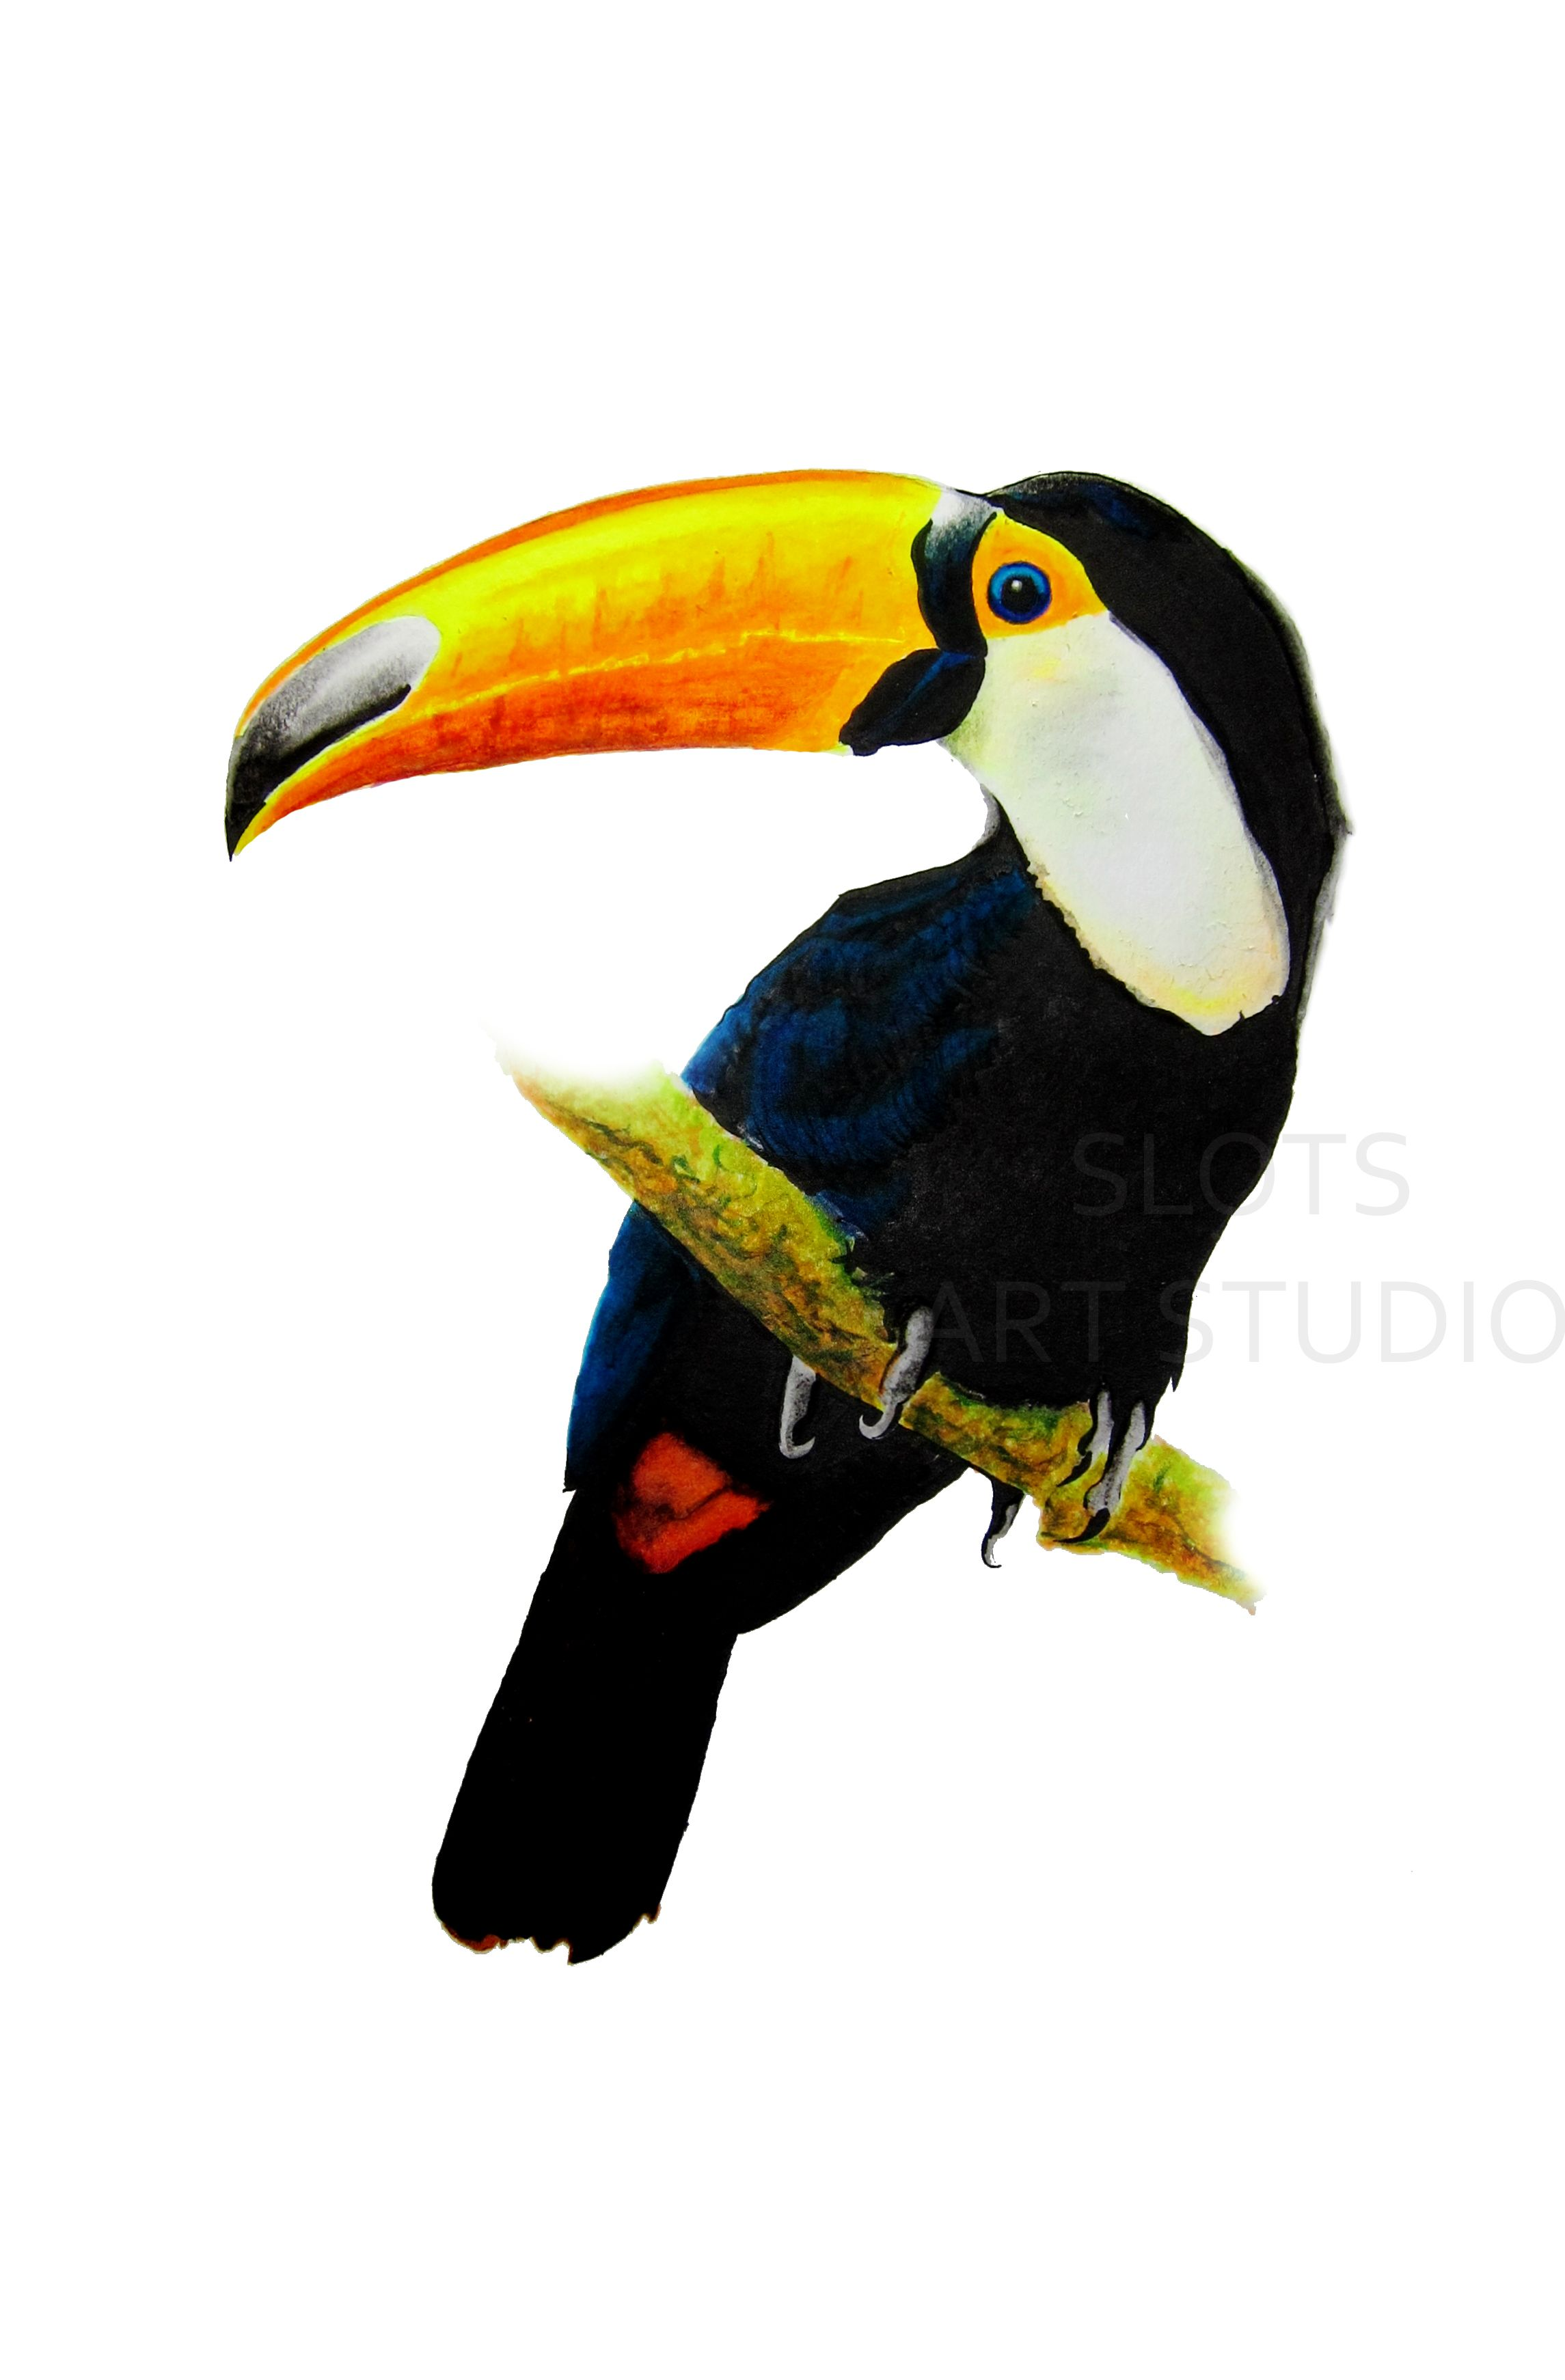 2290x3483 Toucan I Chose A Toucan With A Warm Coloured Nose Rather Than